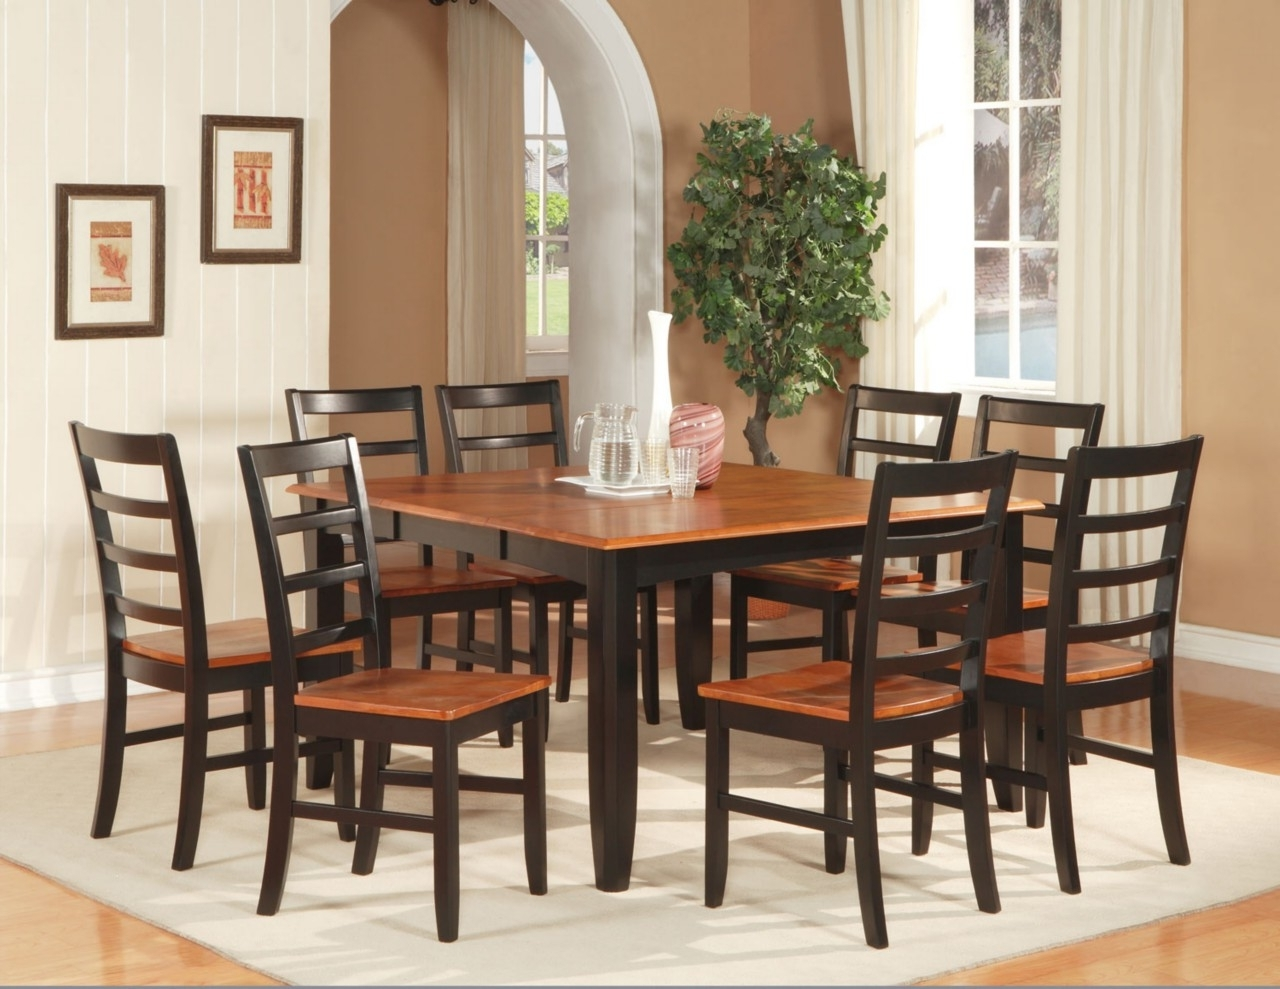 Most Current Dining Room Table Sets – Awesome House : Best Kitchen And Dining Inside Dining Room Tables And Chairs (View 22 of 25)